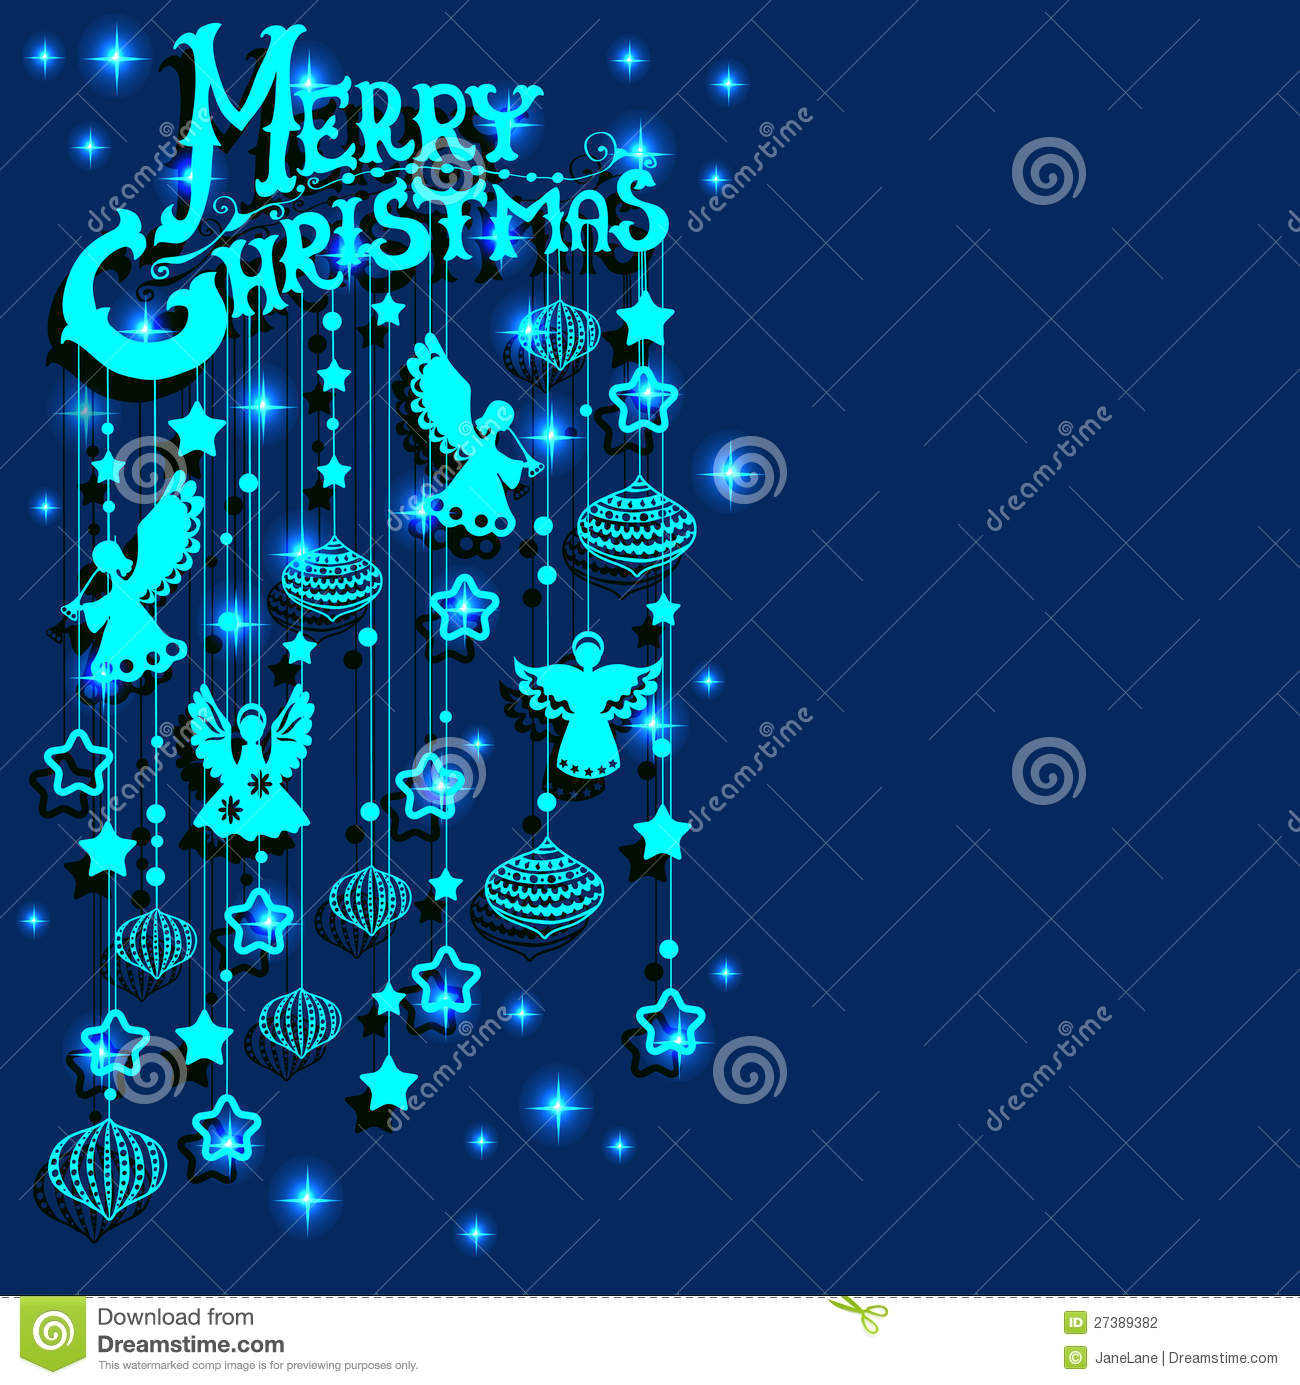 Merry Christmas Card With Angels Paper Cut Style Stock